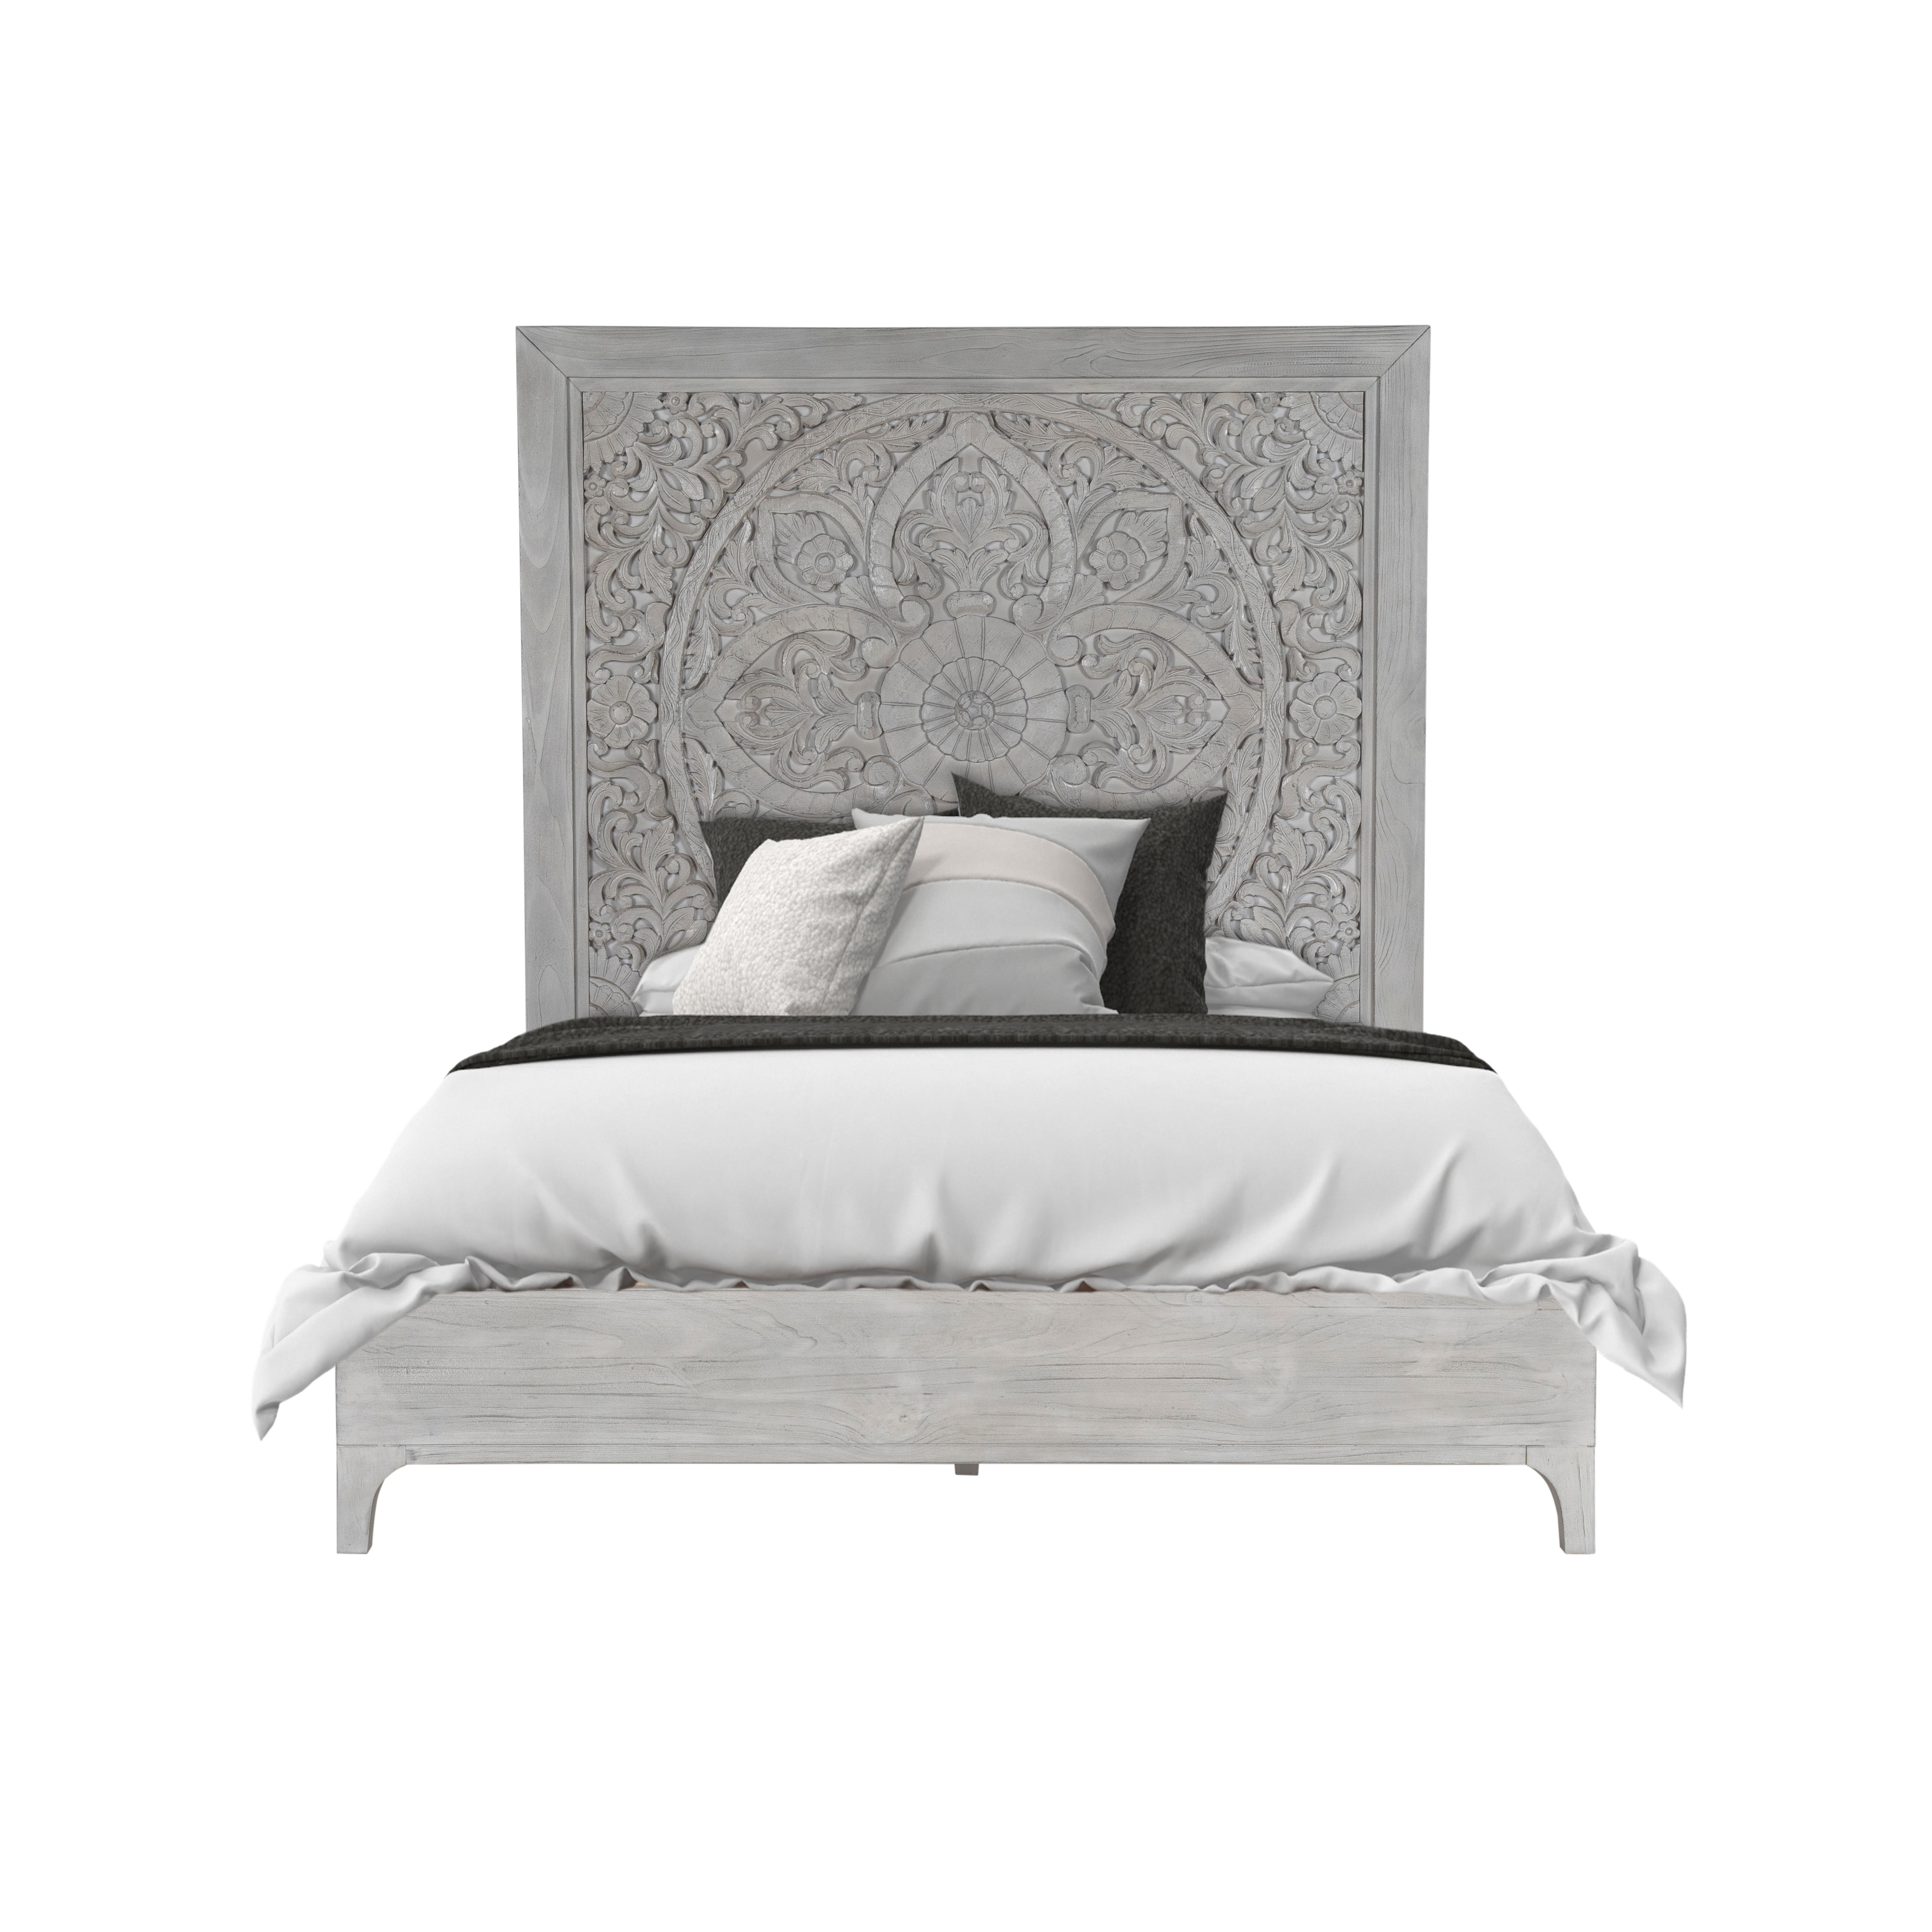 Boho Chic Bed in Washed White   Overstock   20